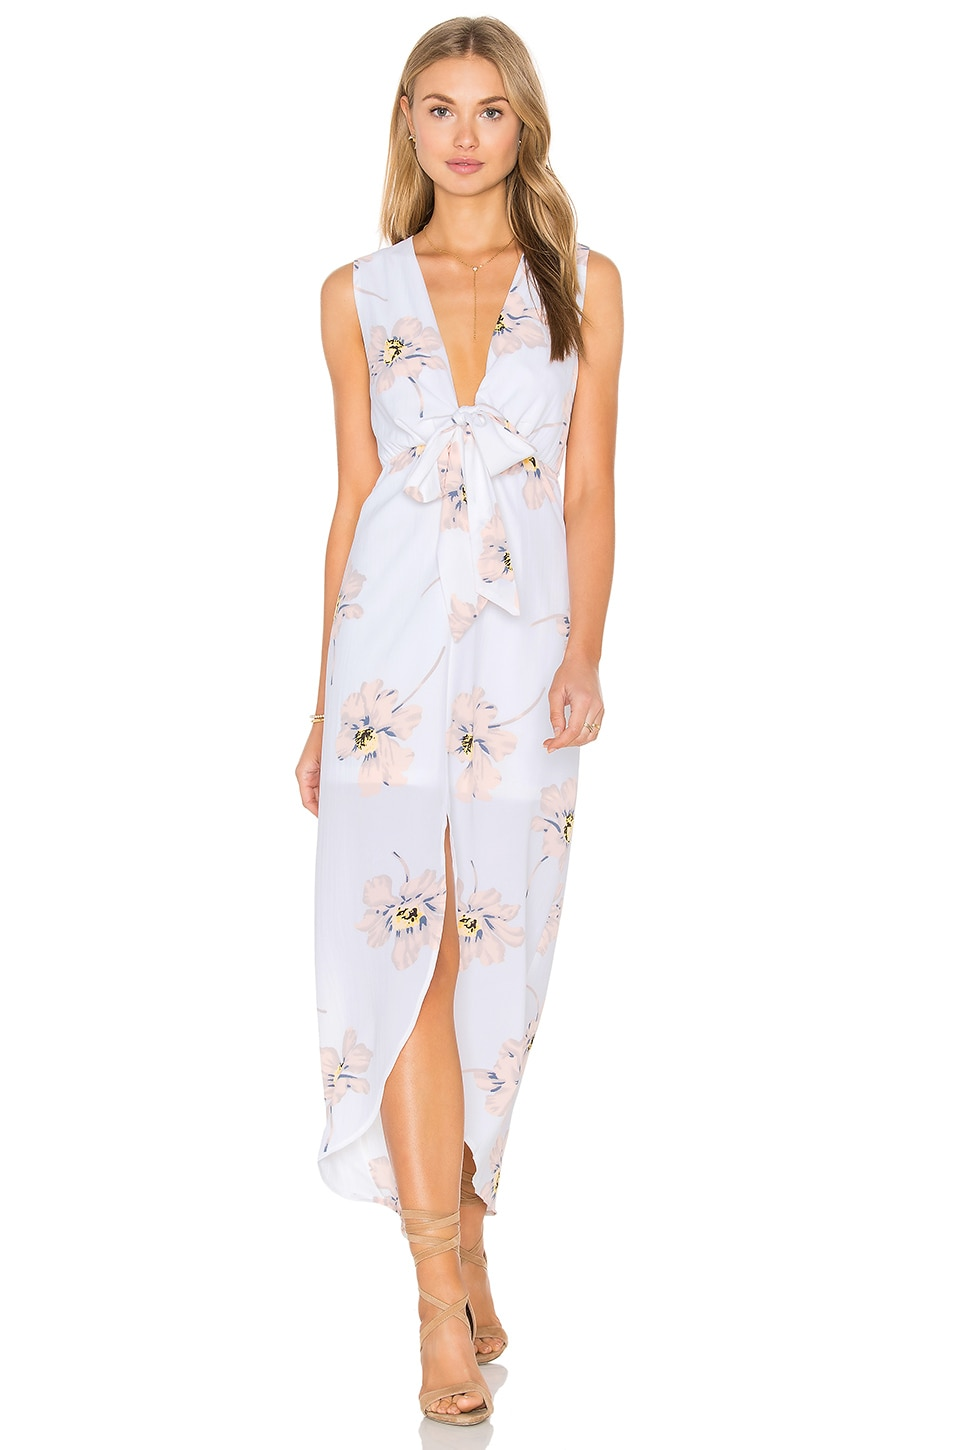 REVERSE Lena Dress in White Pink Floral